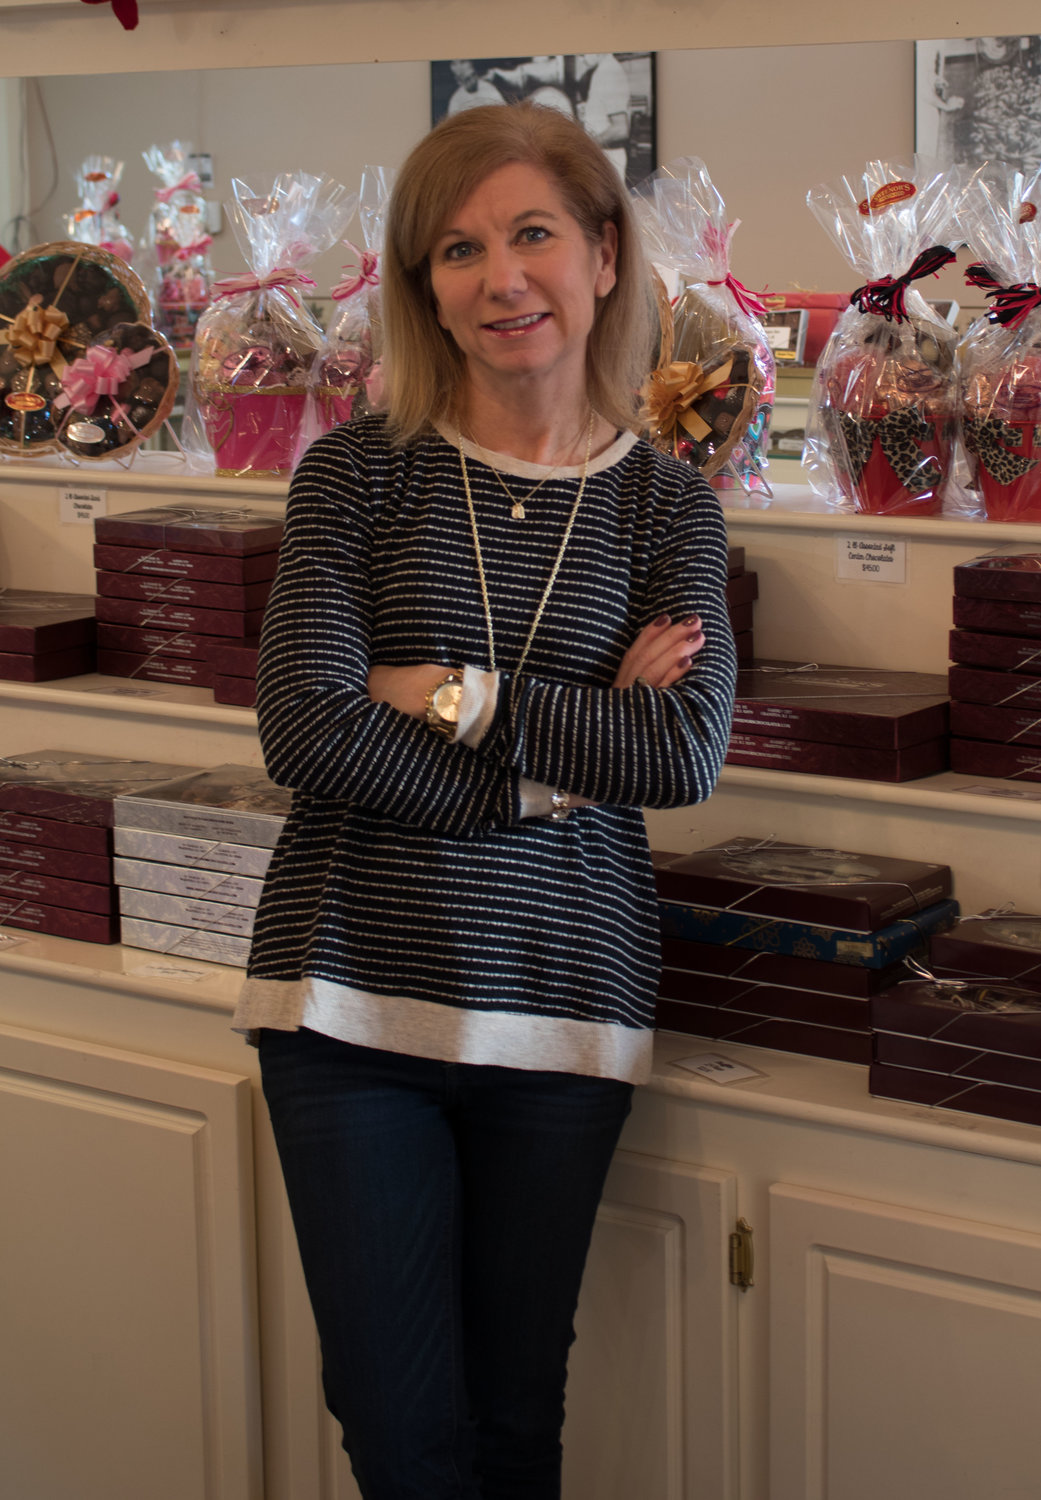 Leading Ladies 2019: Lisa Sweenor Dunham of Sweenor's Chocolates in Wakefield and Garden City